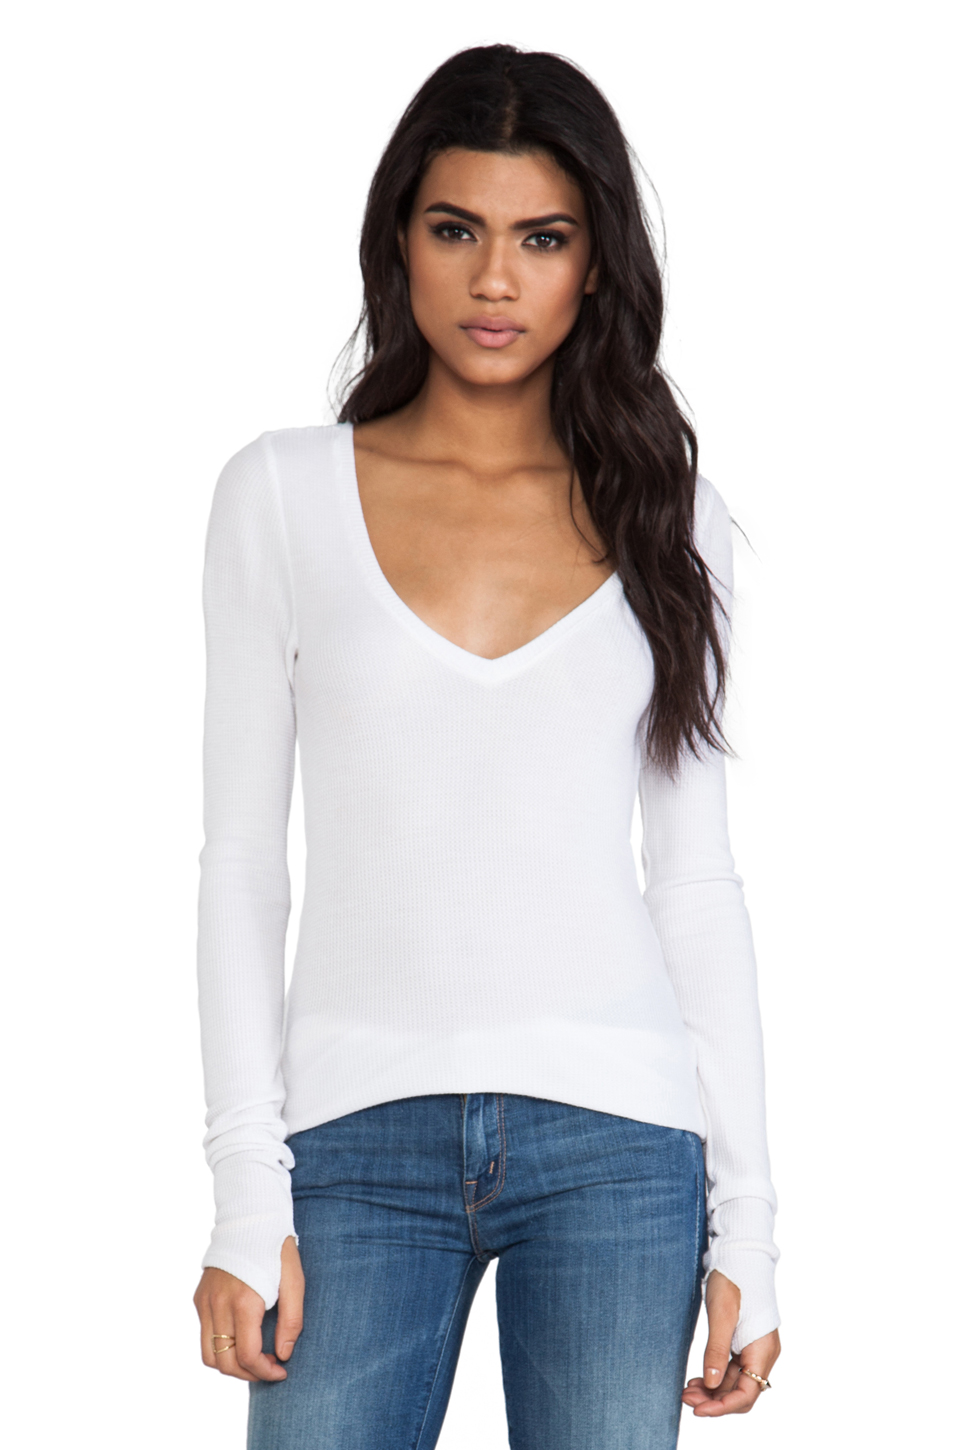 Feel the Piece Viper Thermal V Neck with Thumb Holes in White